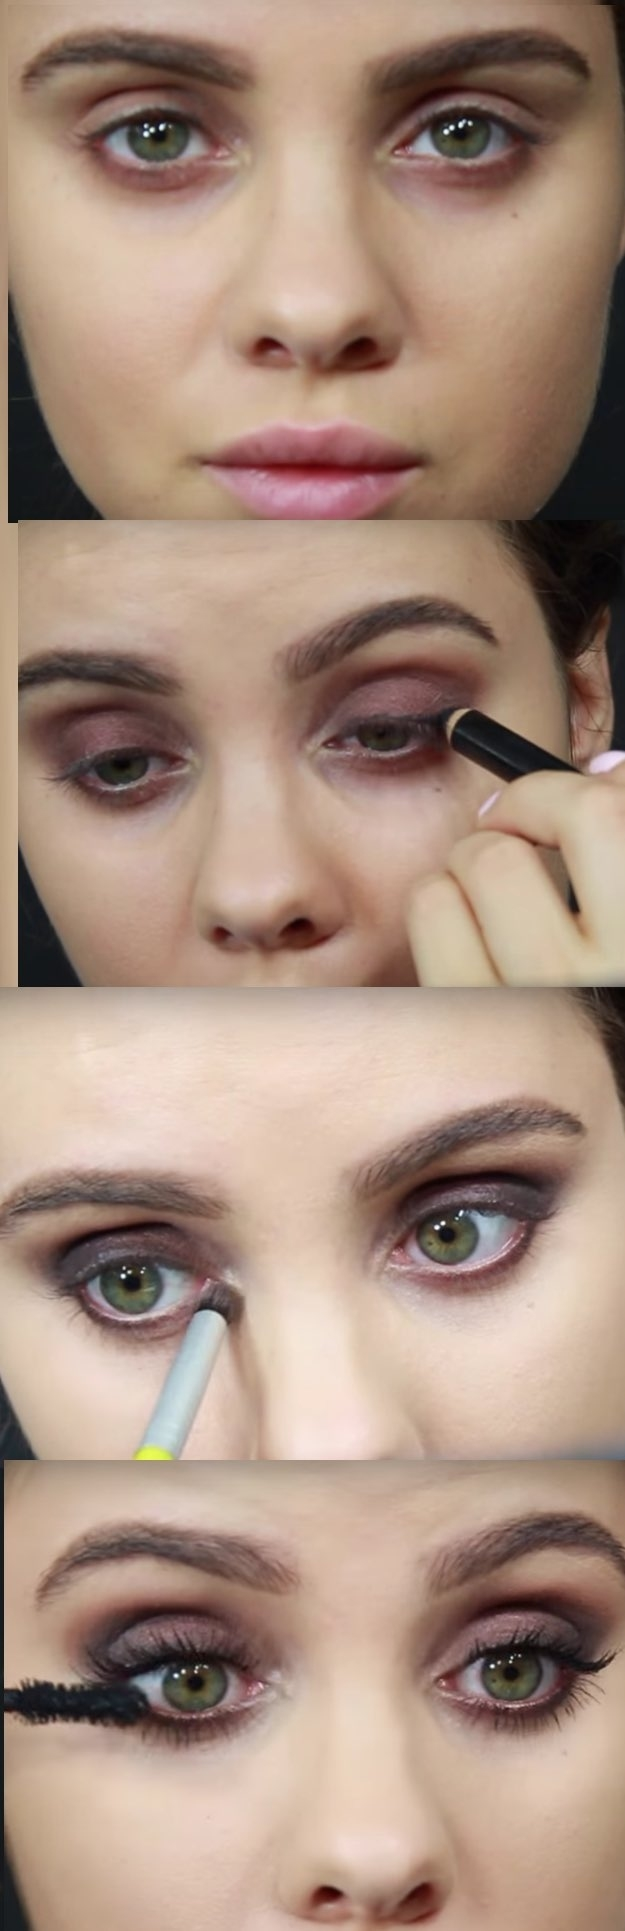 50 Perfect Makeup Tutorials For Green Eyes - The Goddess intended for How To Apply Eye Makeup For Green Eyes Video